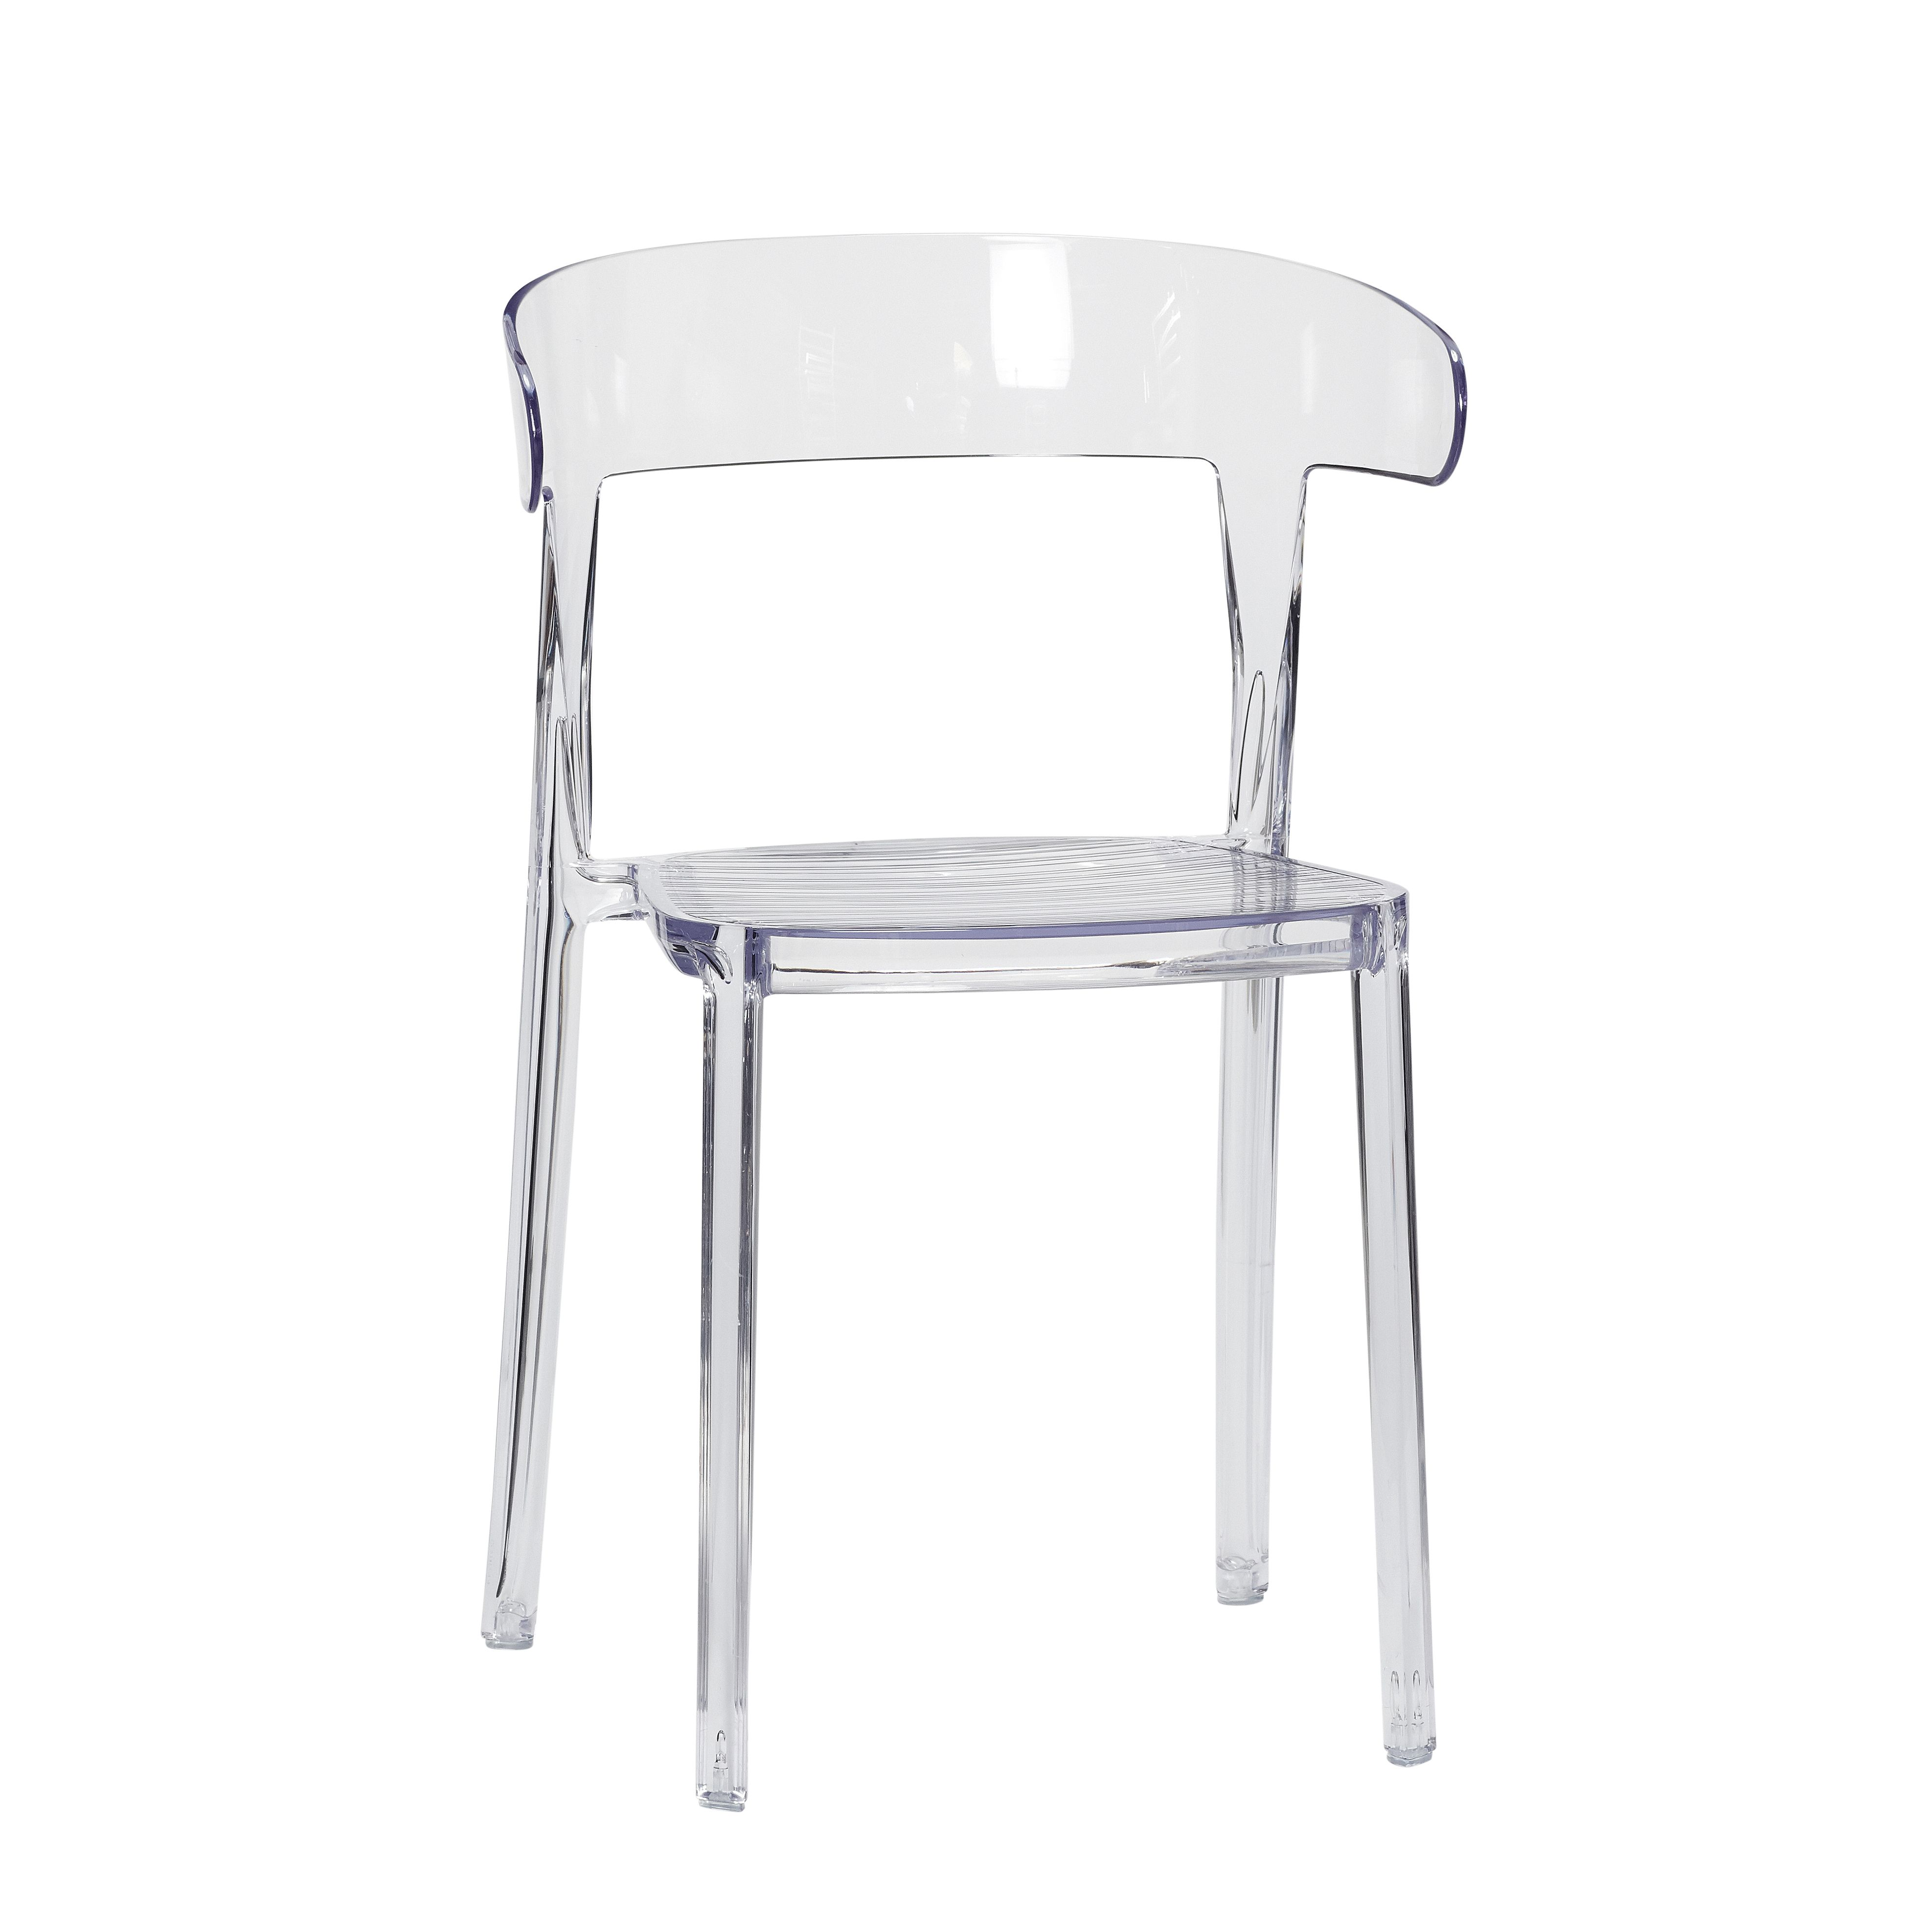 Clear plastic chair The transparent look adds a lightness to the